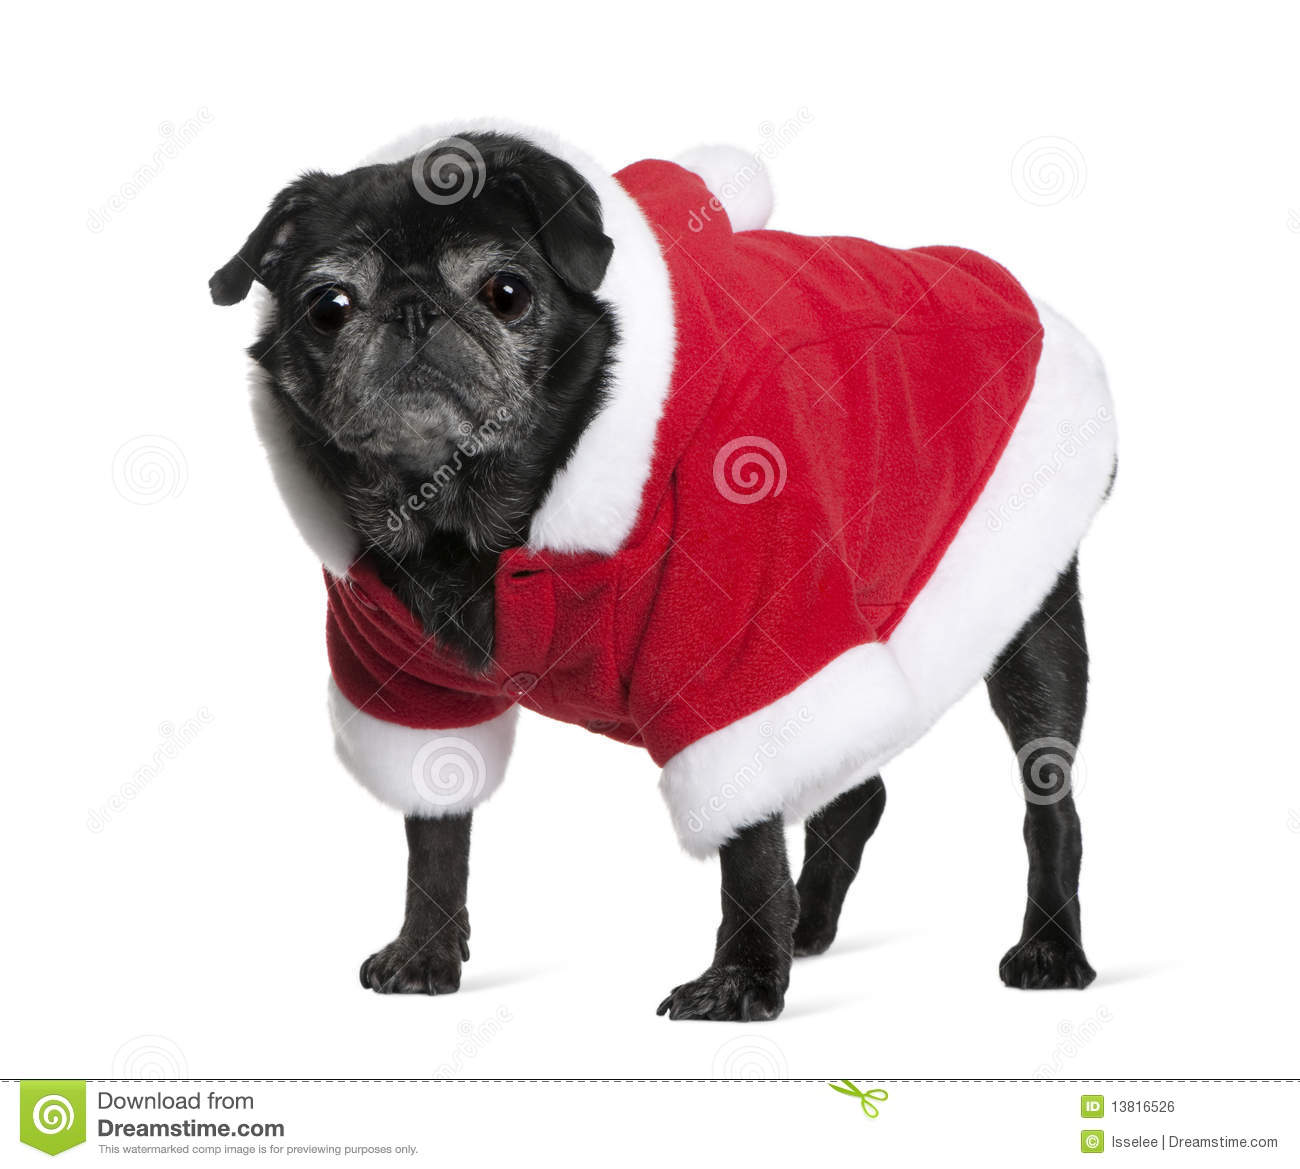 Pug Coat Colors http://www.dreamstime.com/royalty-free-stock-image-pug-santa-coat-10-years-old-image13816526